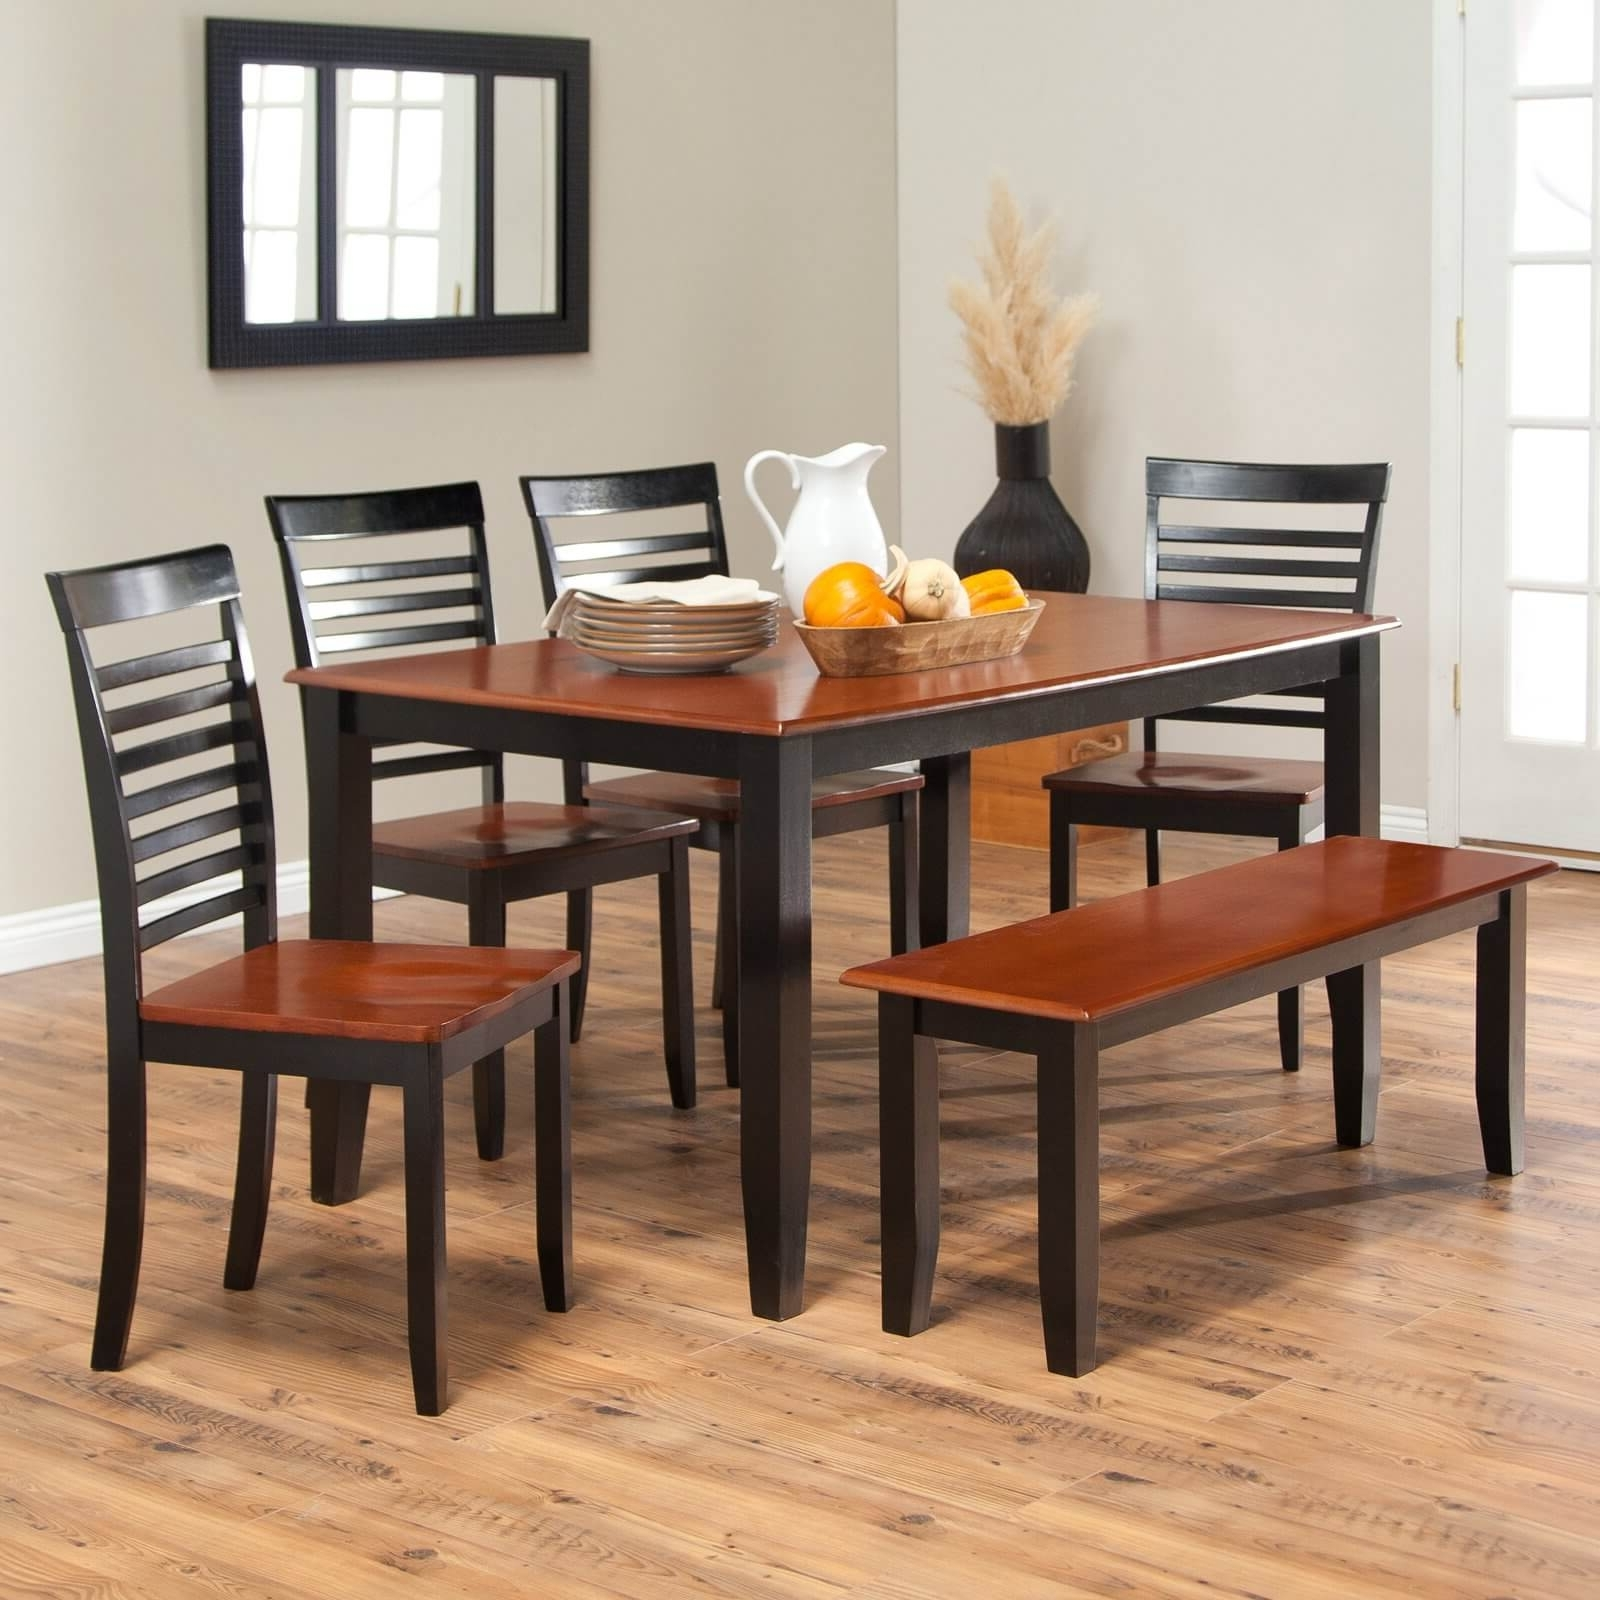 Favorite 26 Dining Room Sets (Big And Small) With Bench Seating (2018) With Small Dining Tables And Chairs (View 6 of 25)